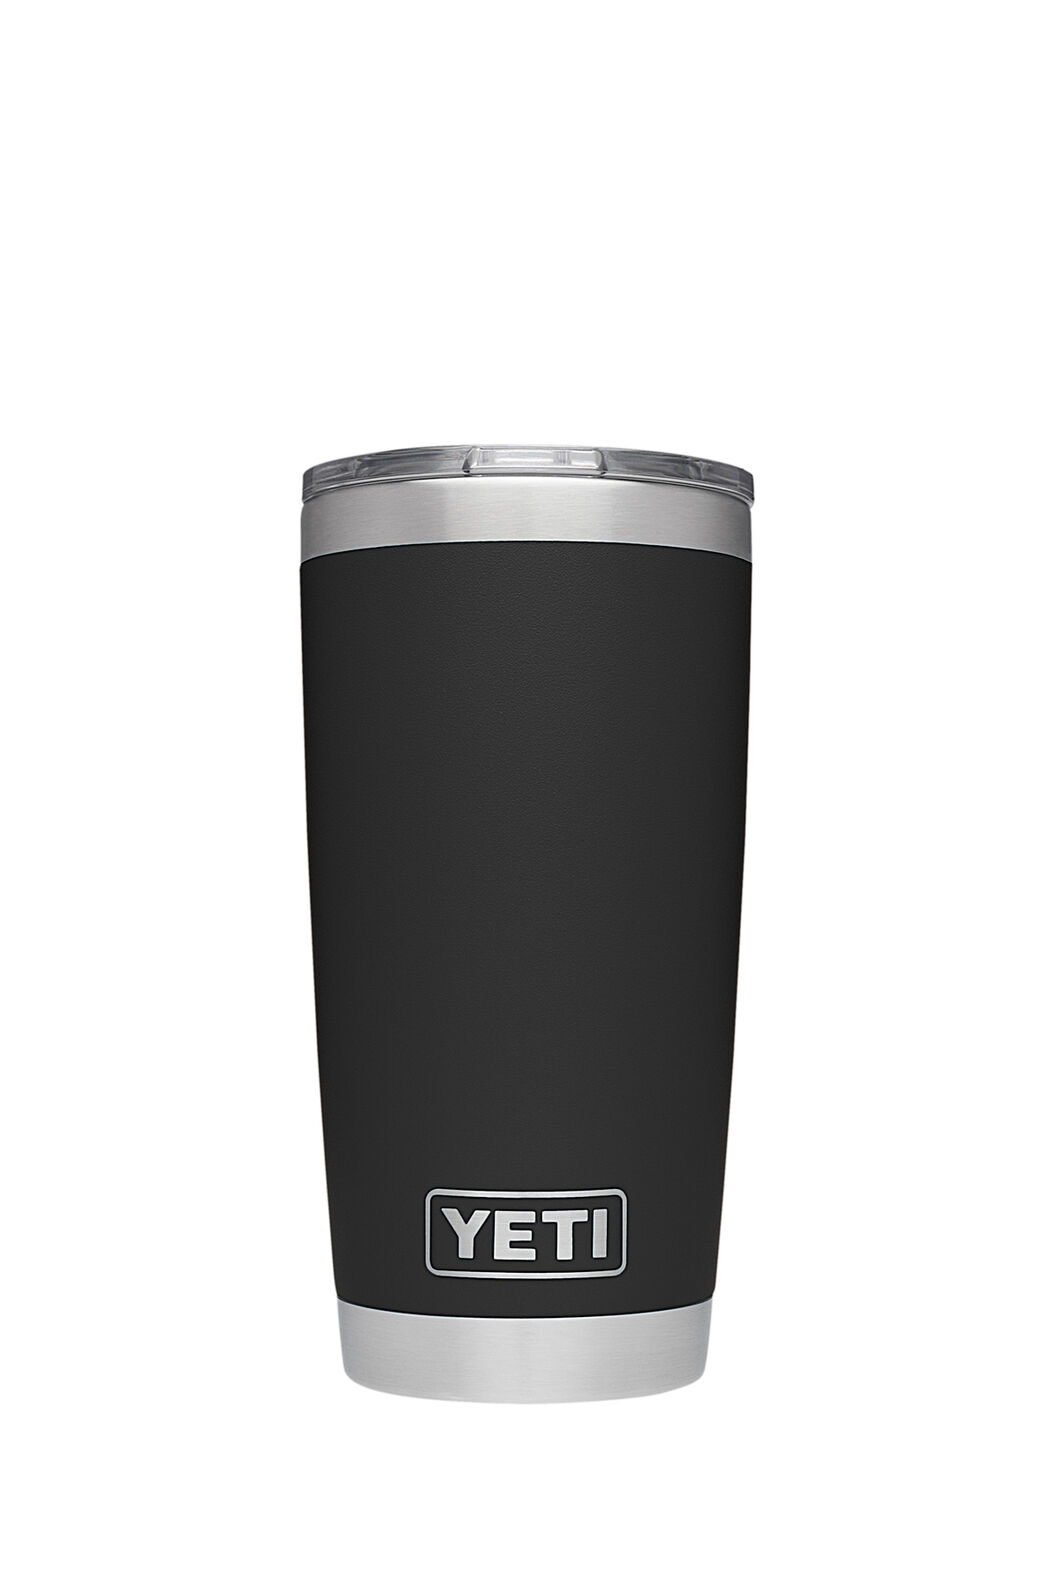 Yeti Rambler Tumbler Stainless Steel 20oz, Black, hi-res